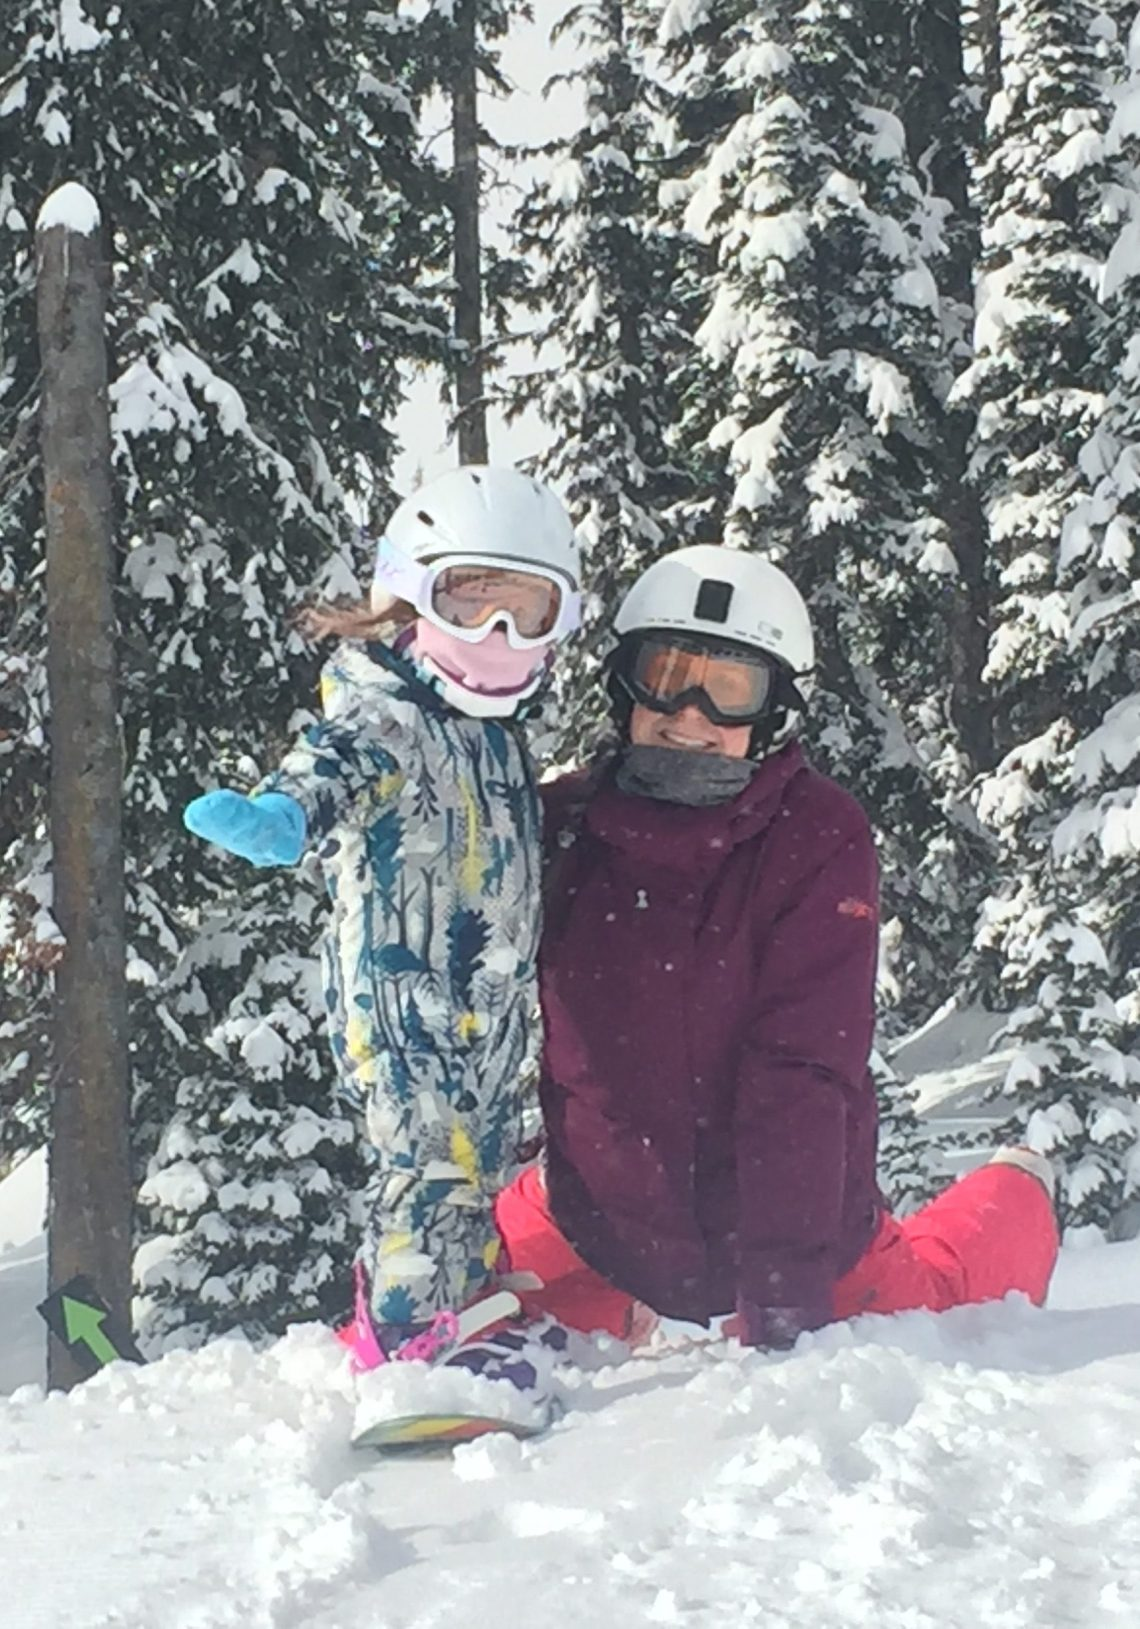 Parenting & Learning to snowboard